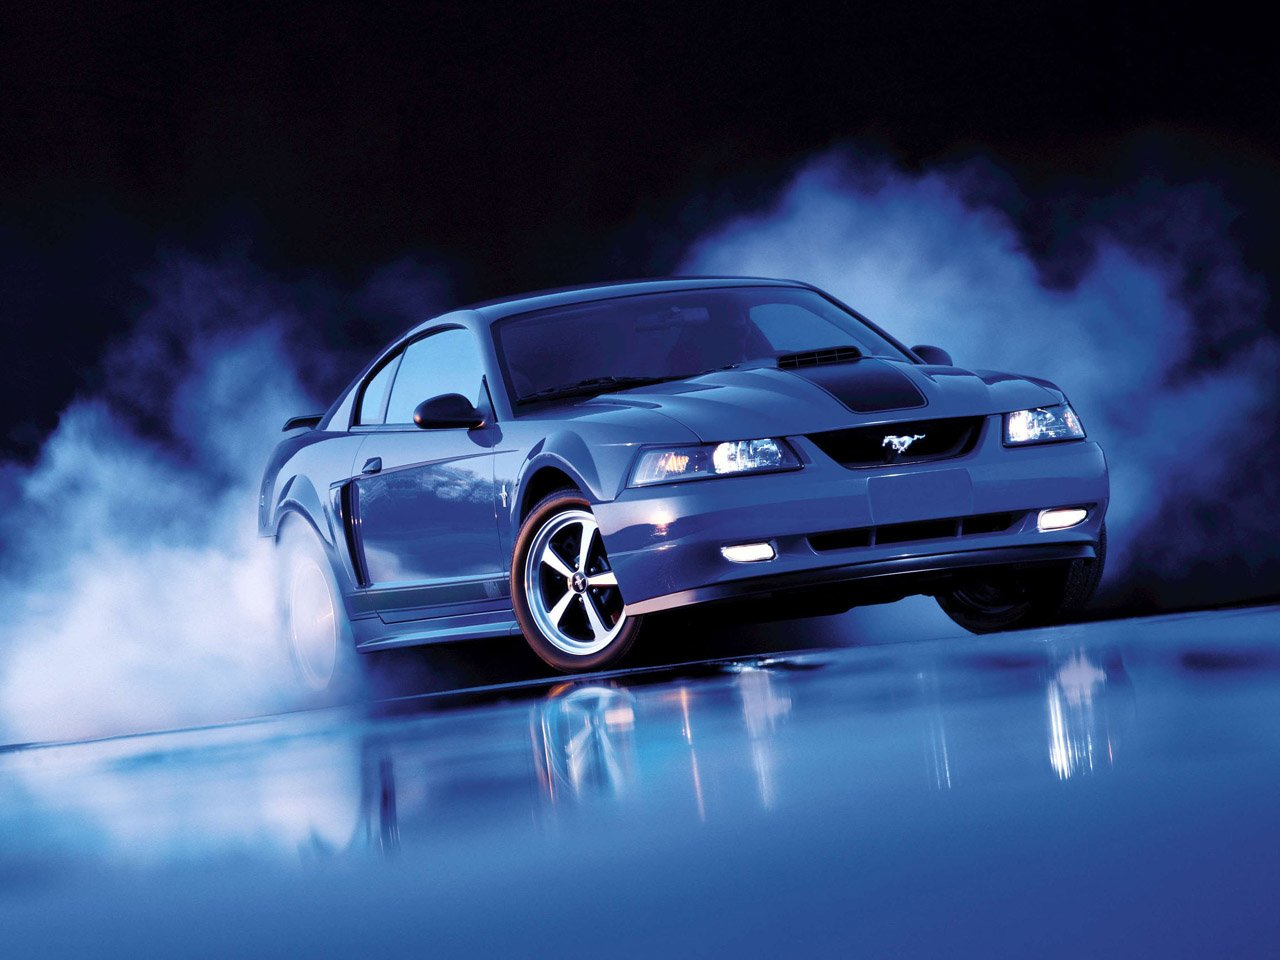 Ford Mustang Cobra Wallpapers Beautiful Cool Cars Wallpapers 1280x960